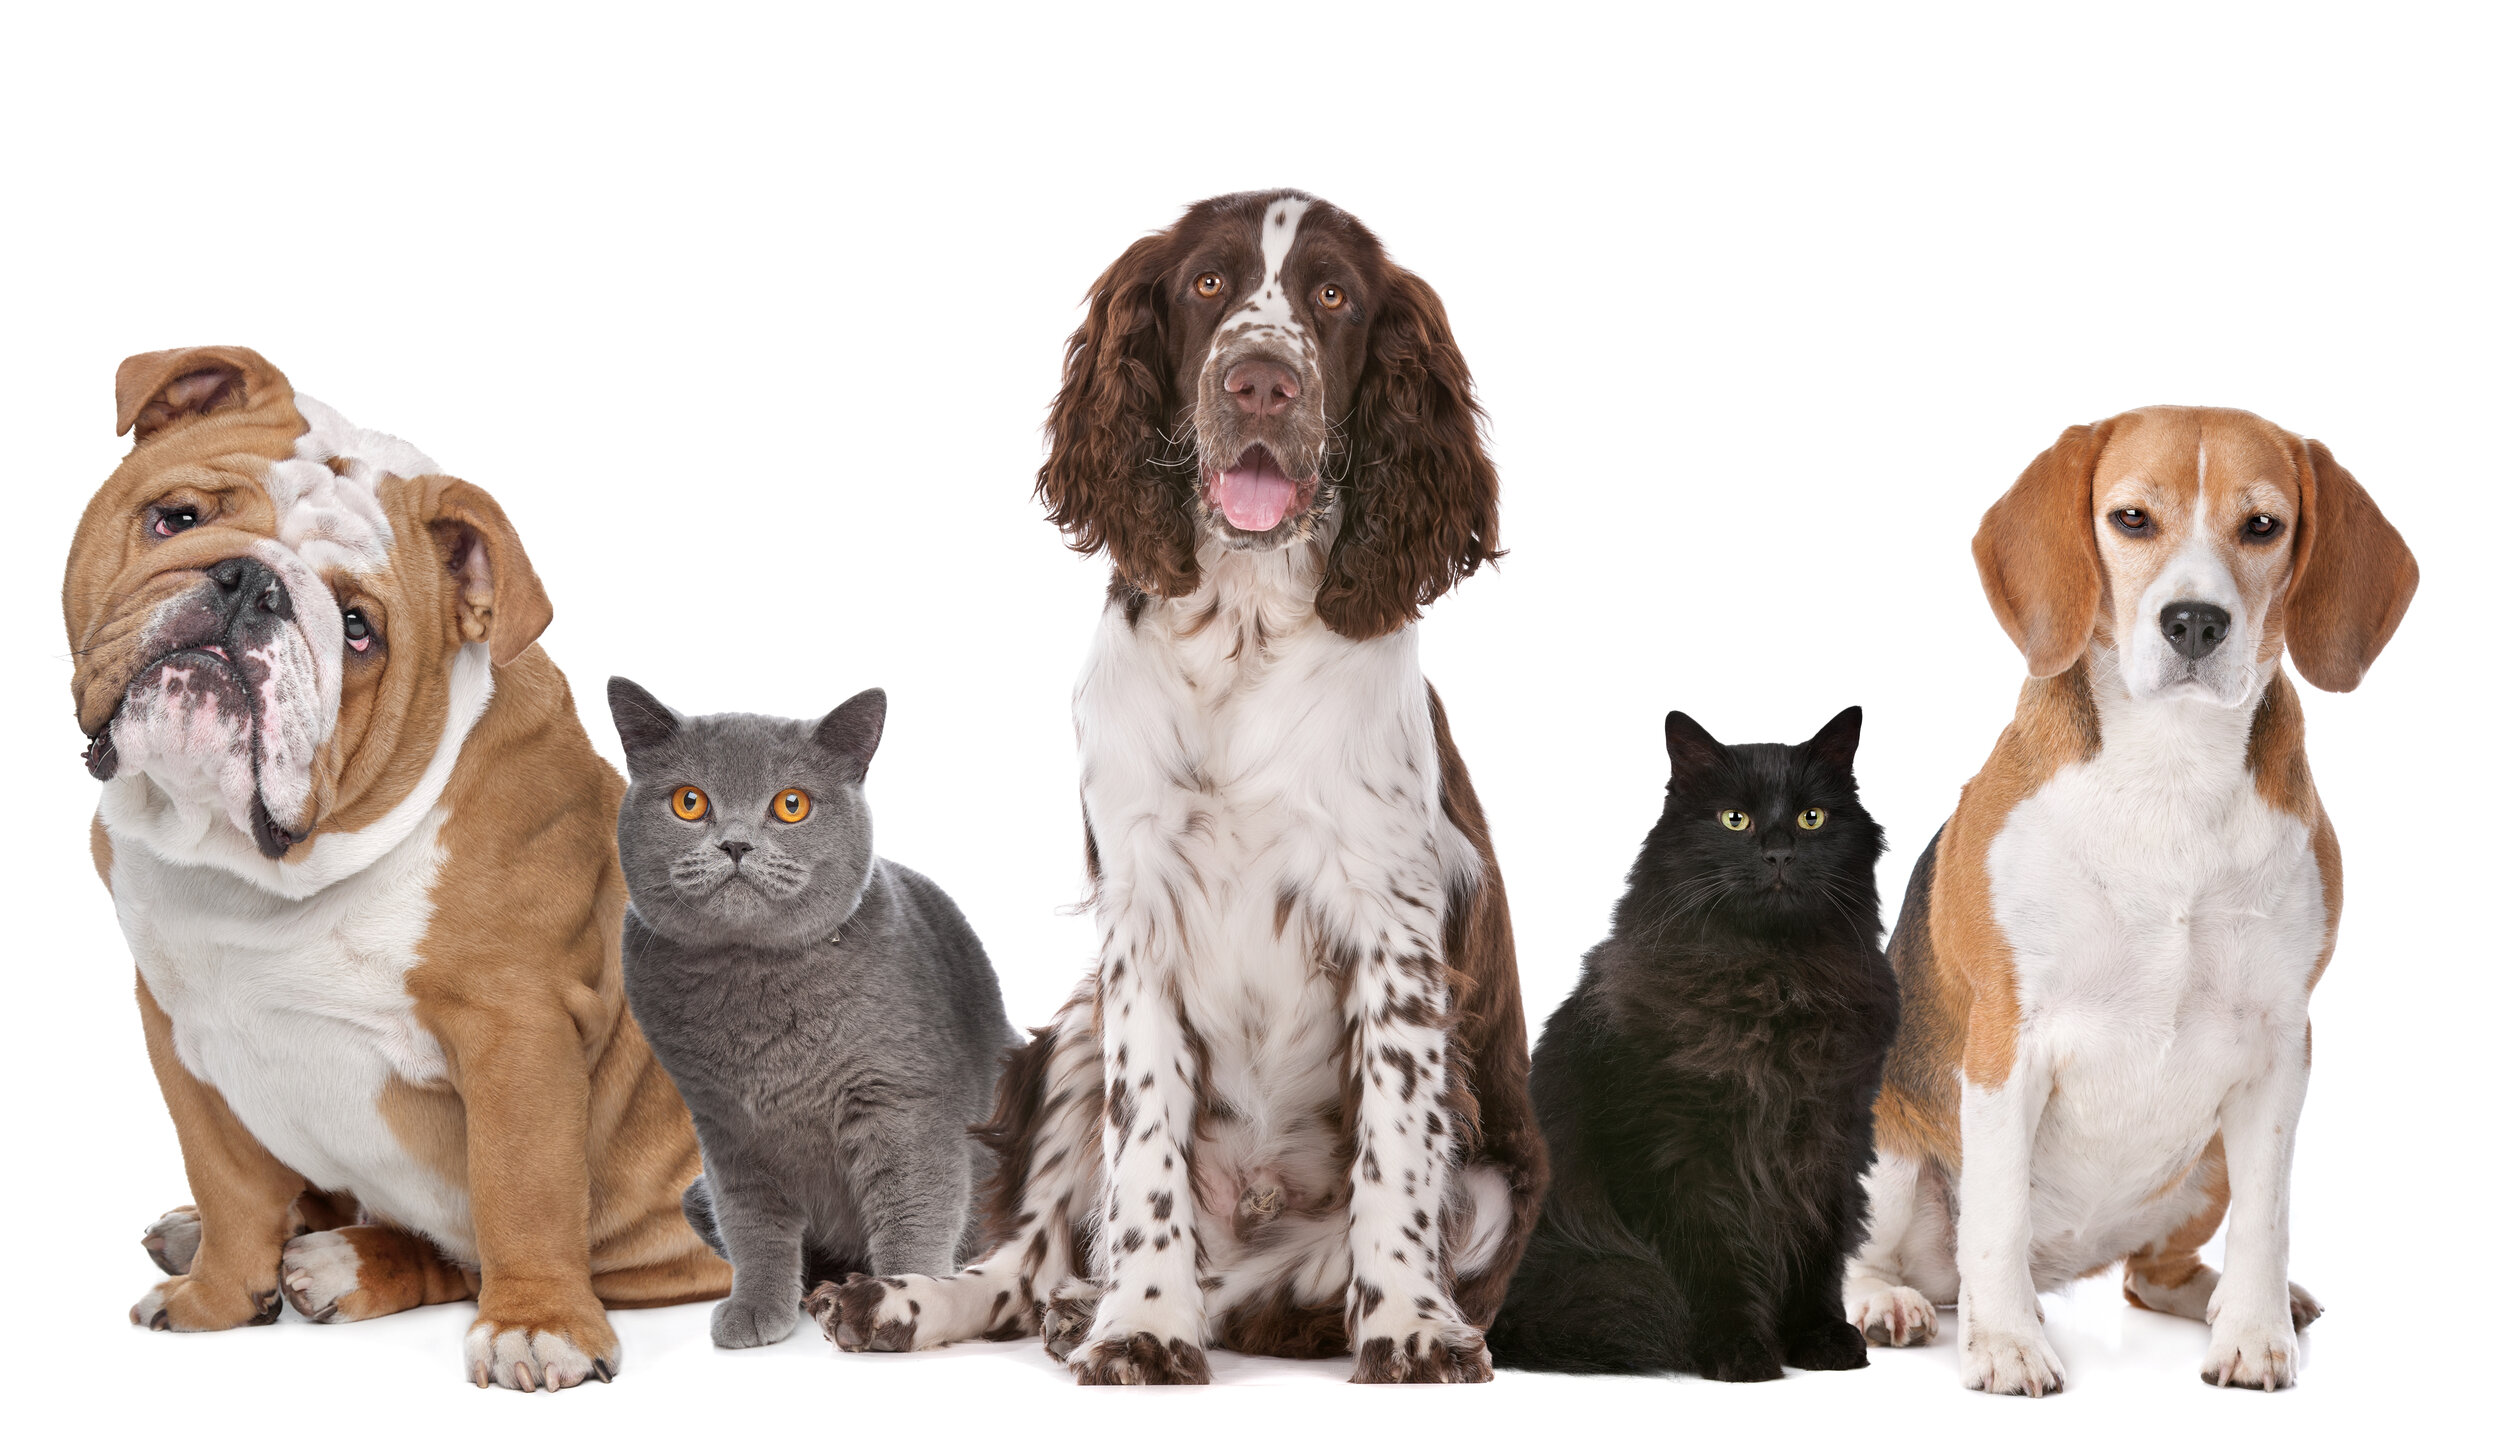 Canva - Group of cats and dogs.jpg